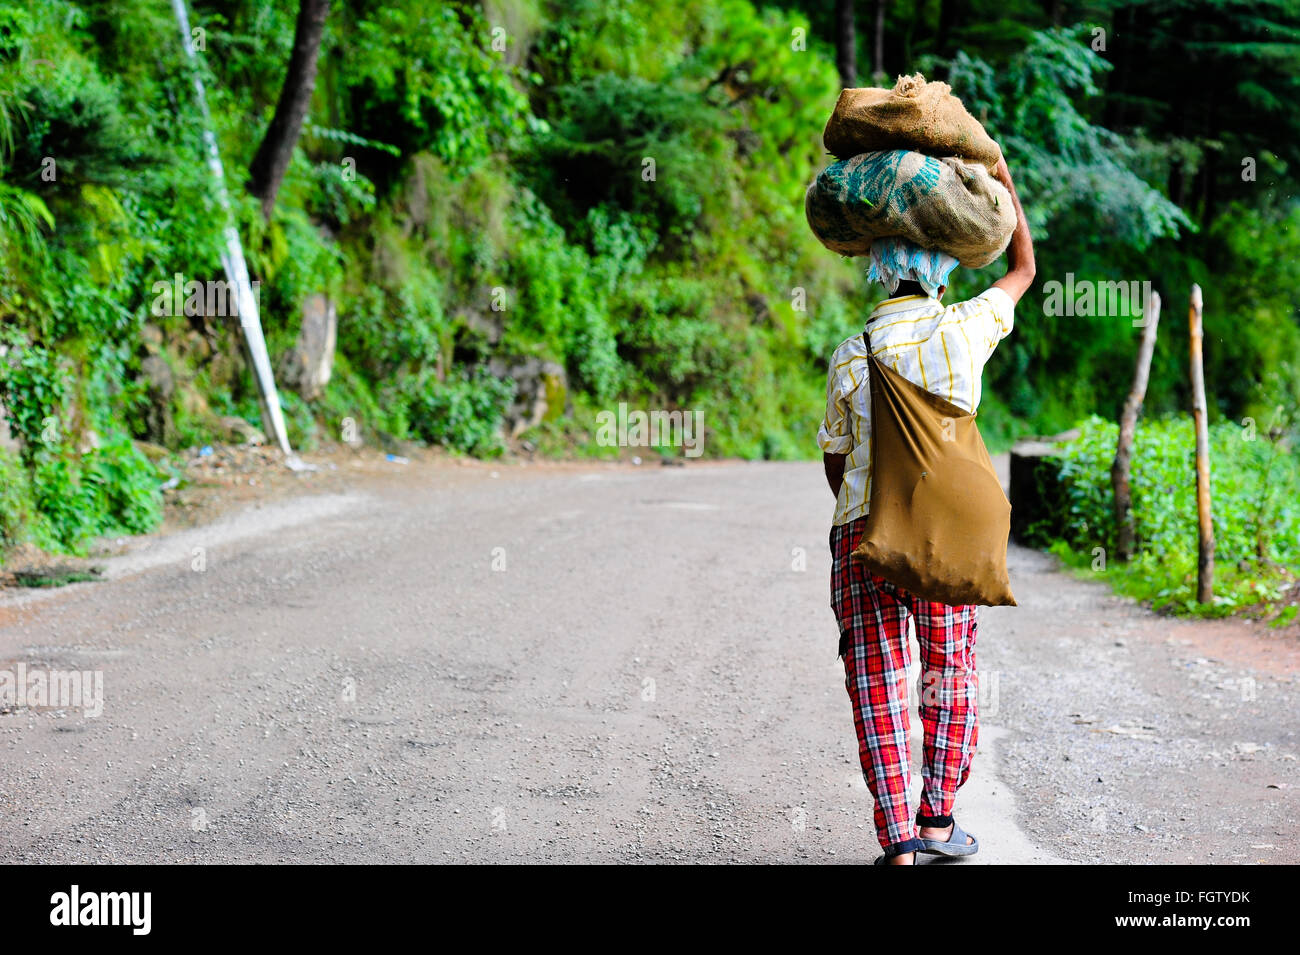 An Indian man walking away, climbing in a forest road, carrying heavy sacks on his head - Stock Image